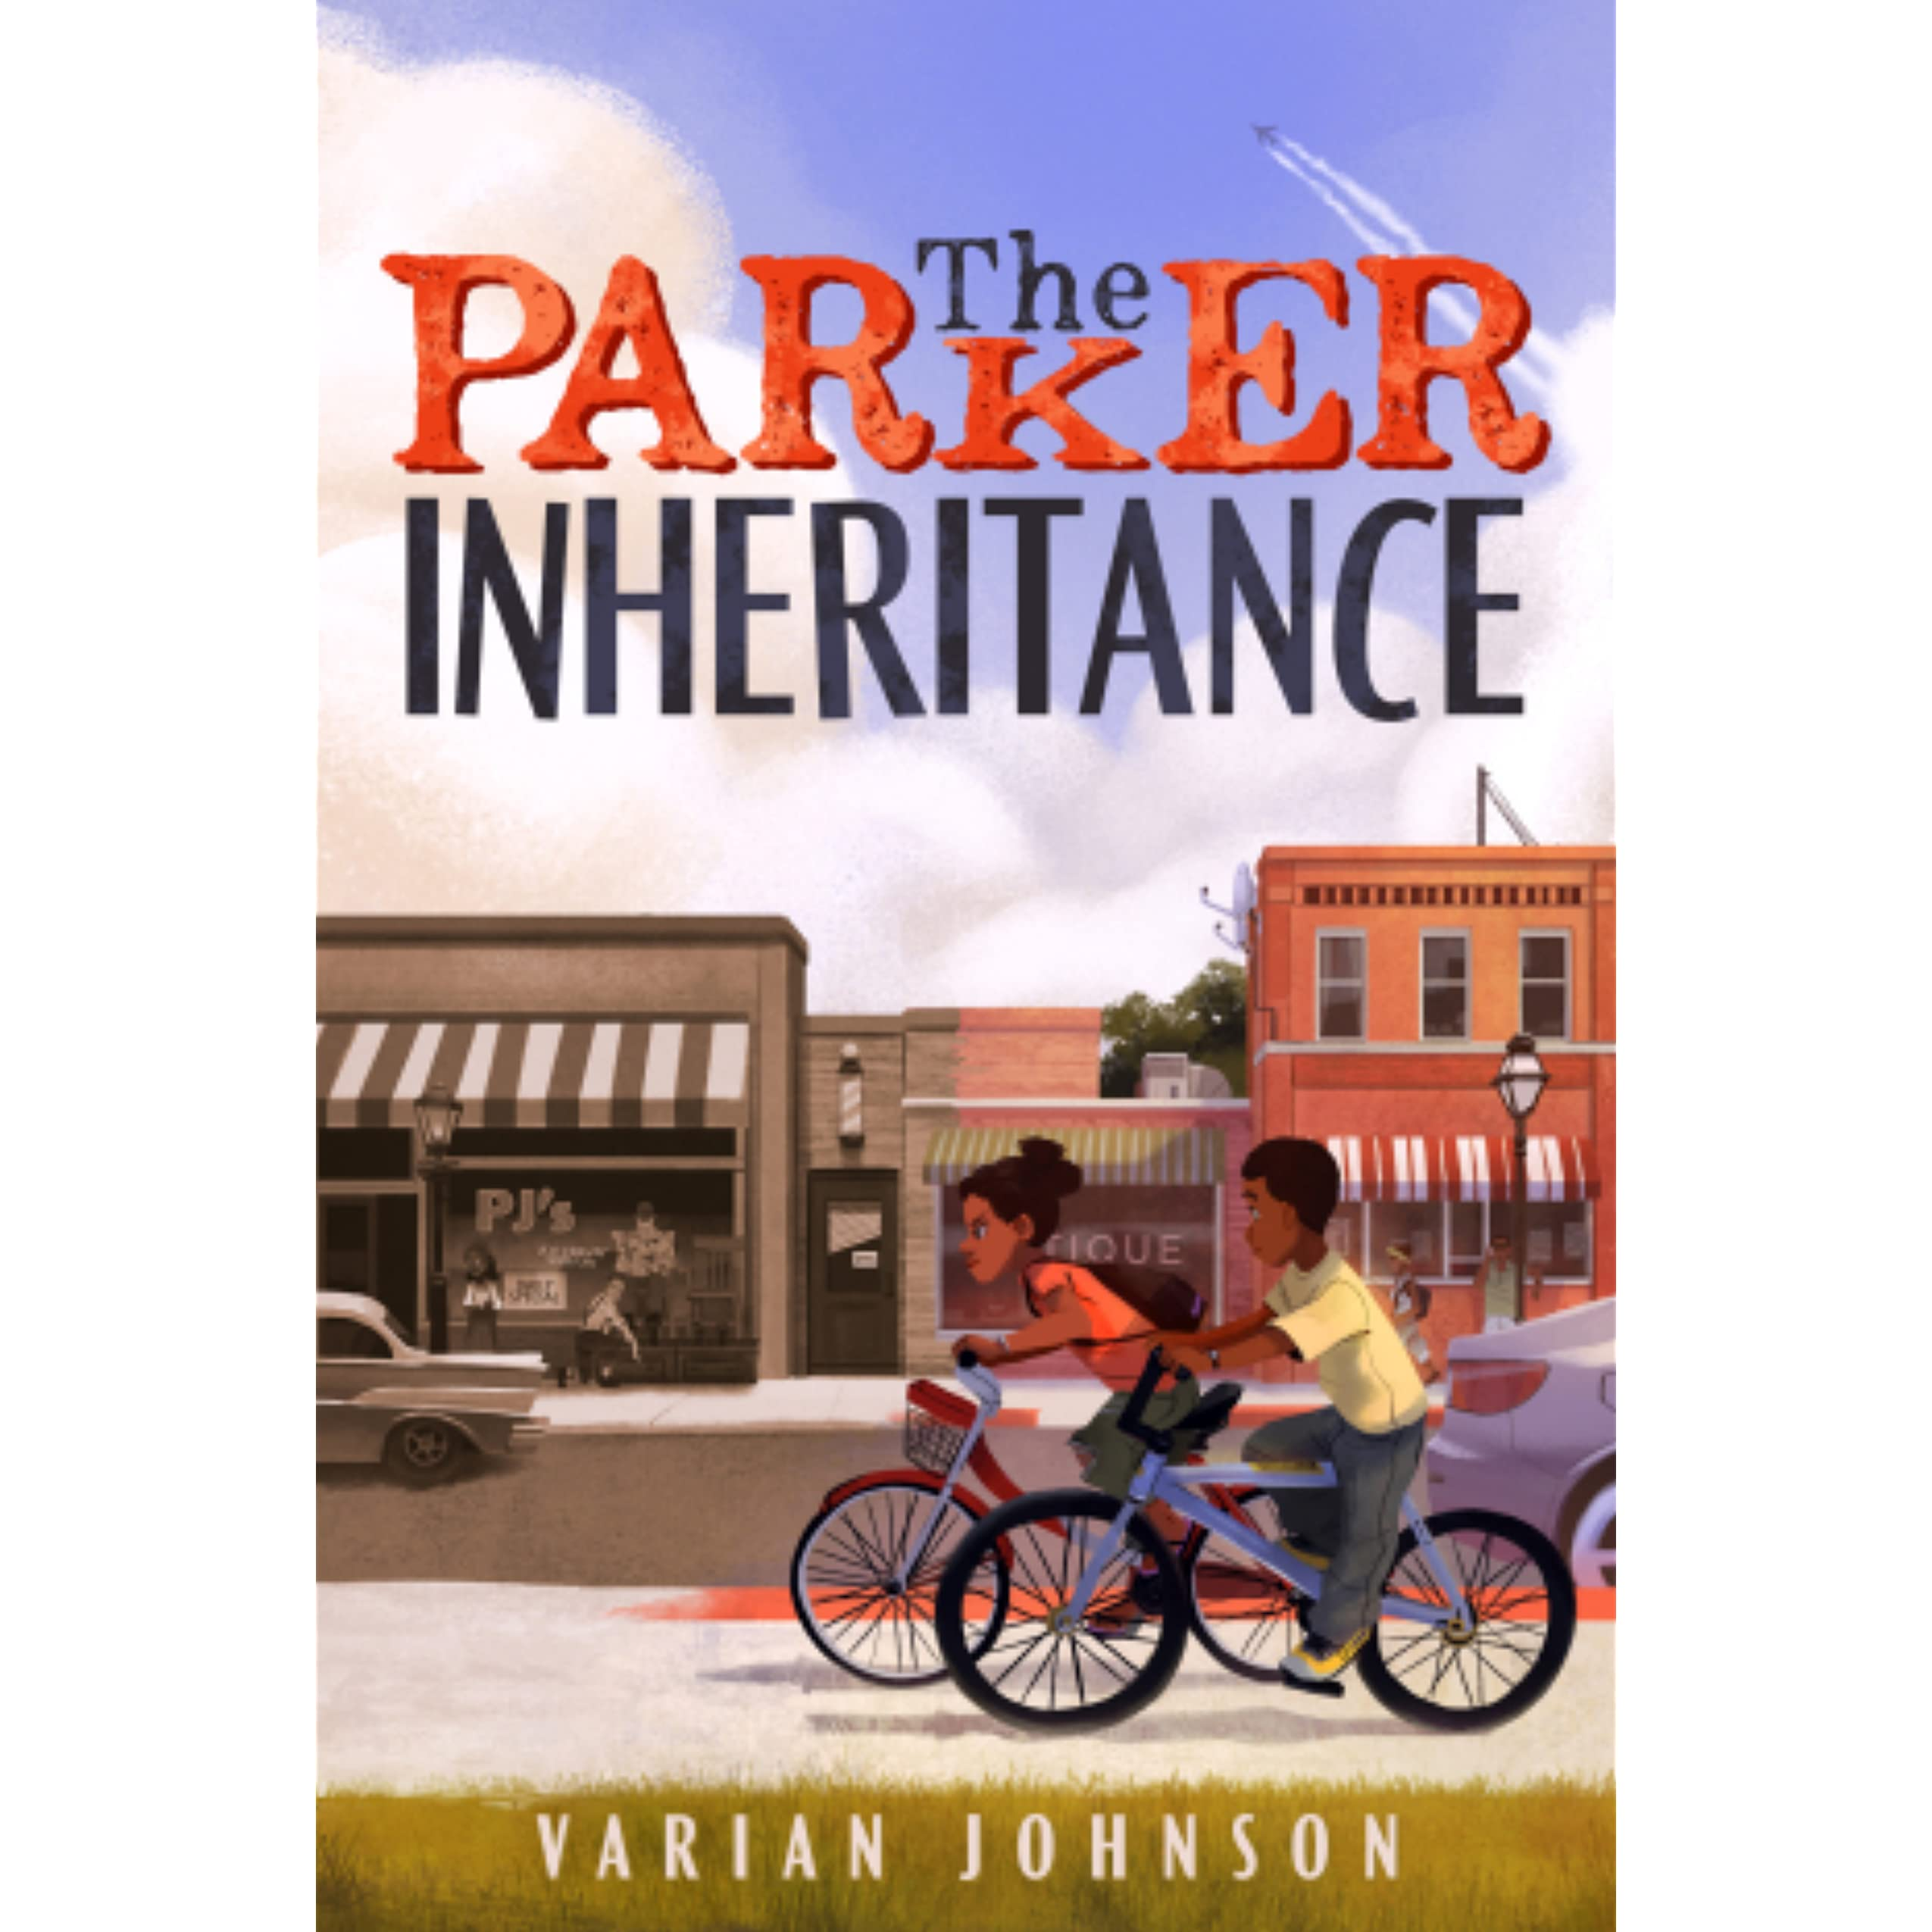 Image result for the parker inheritance